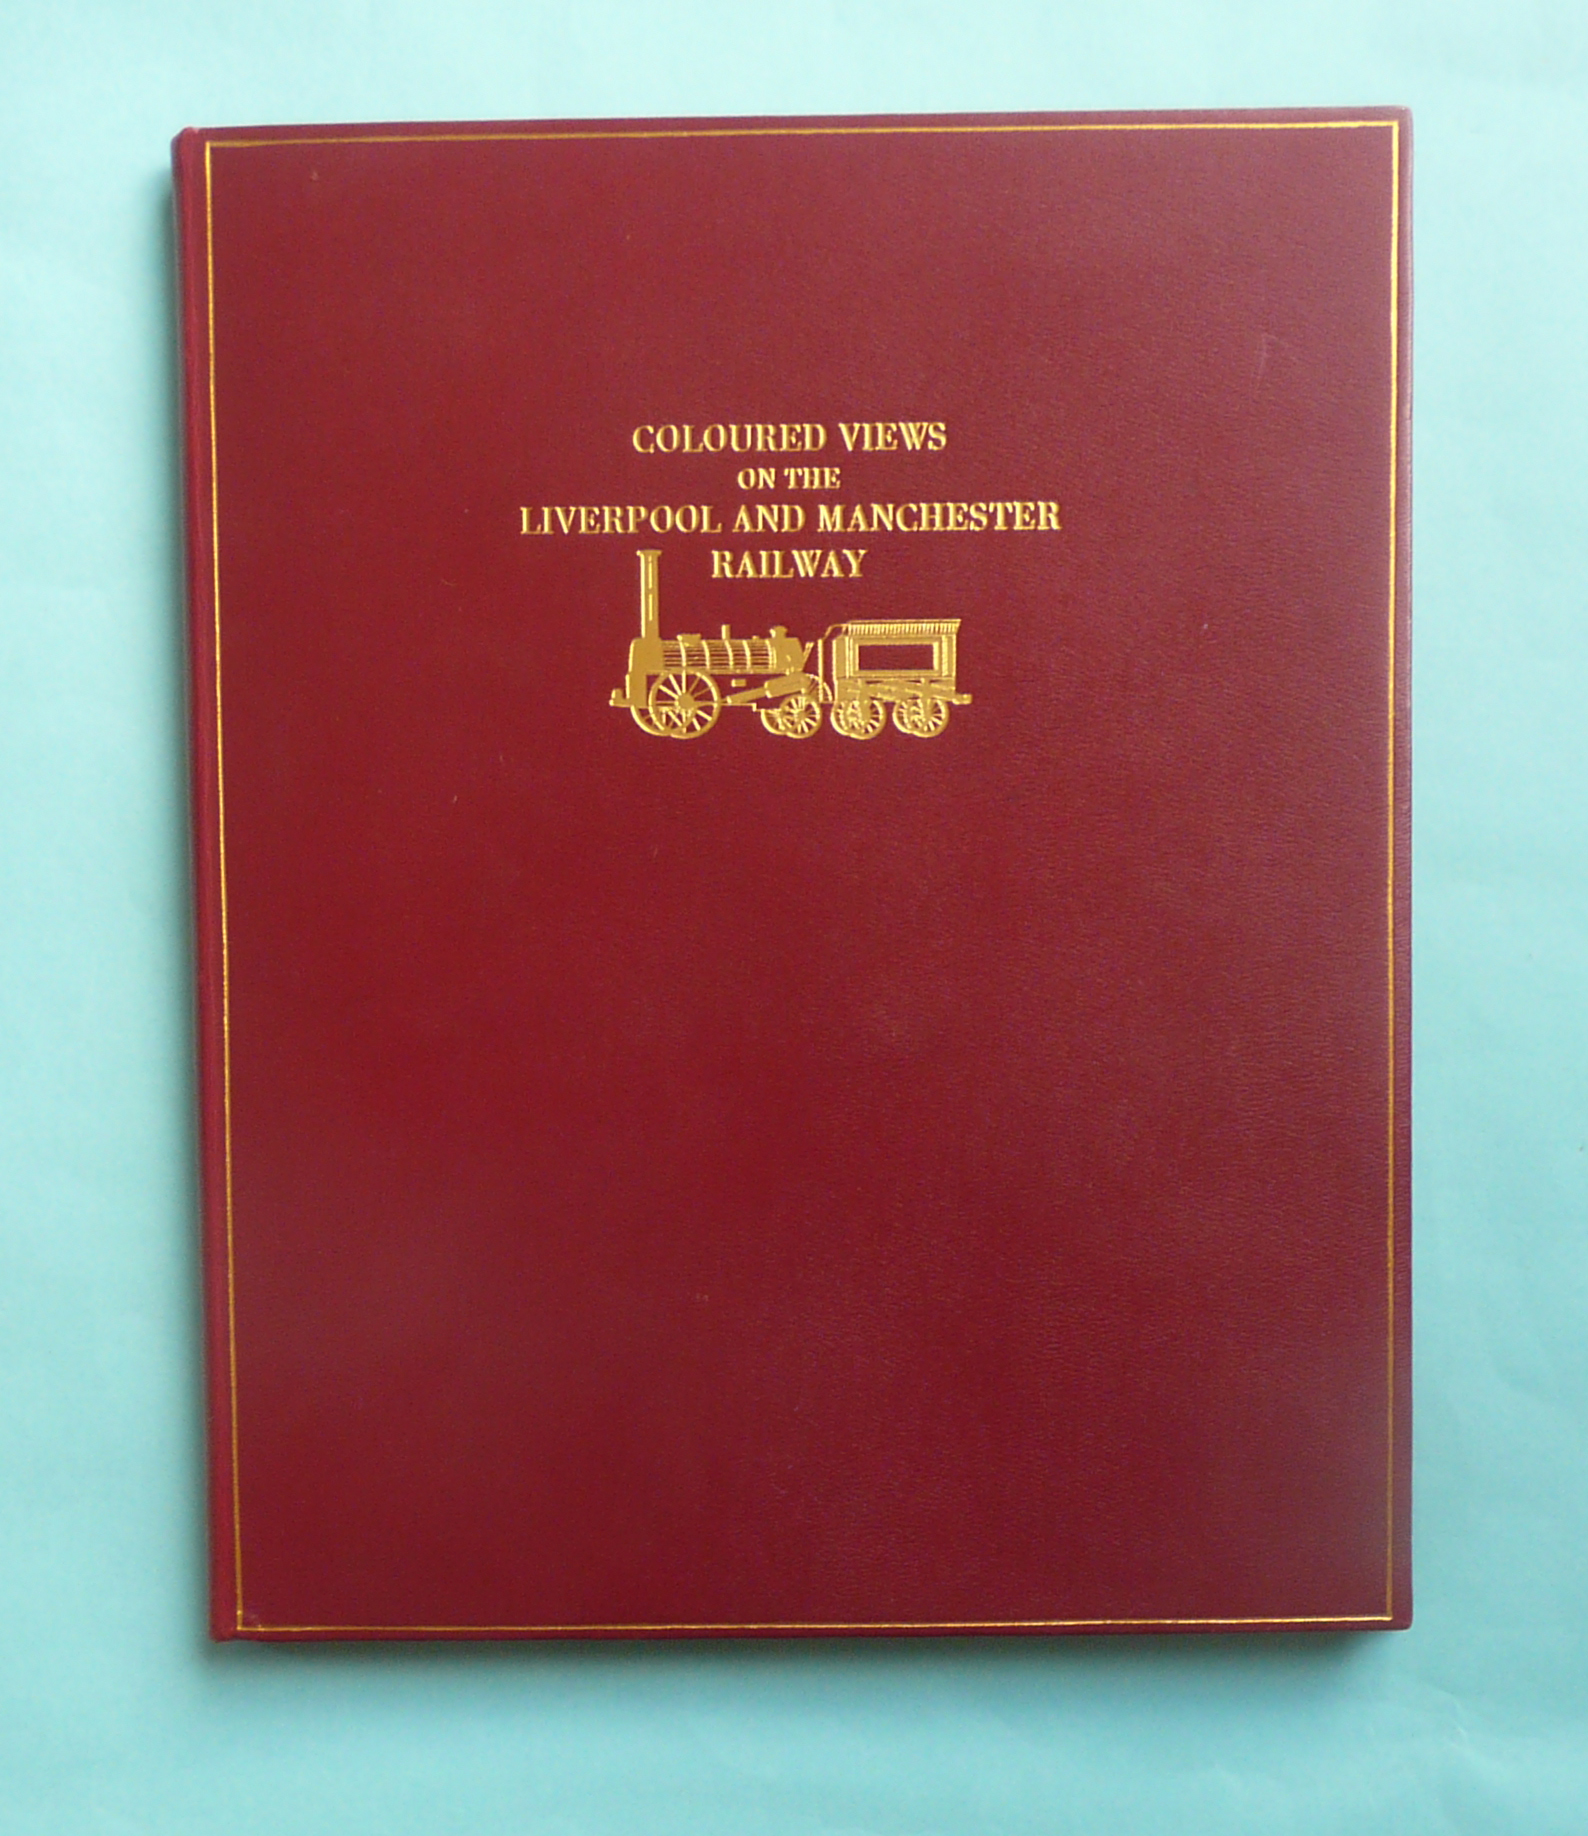 Lot 22 - Liverpool and Manchester Railway: a leather-bound volume being a facsimile of the 1831 original by